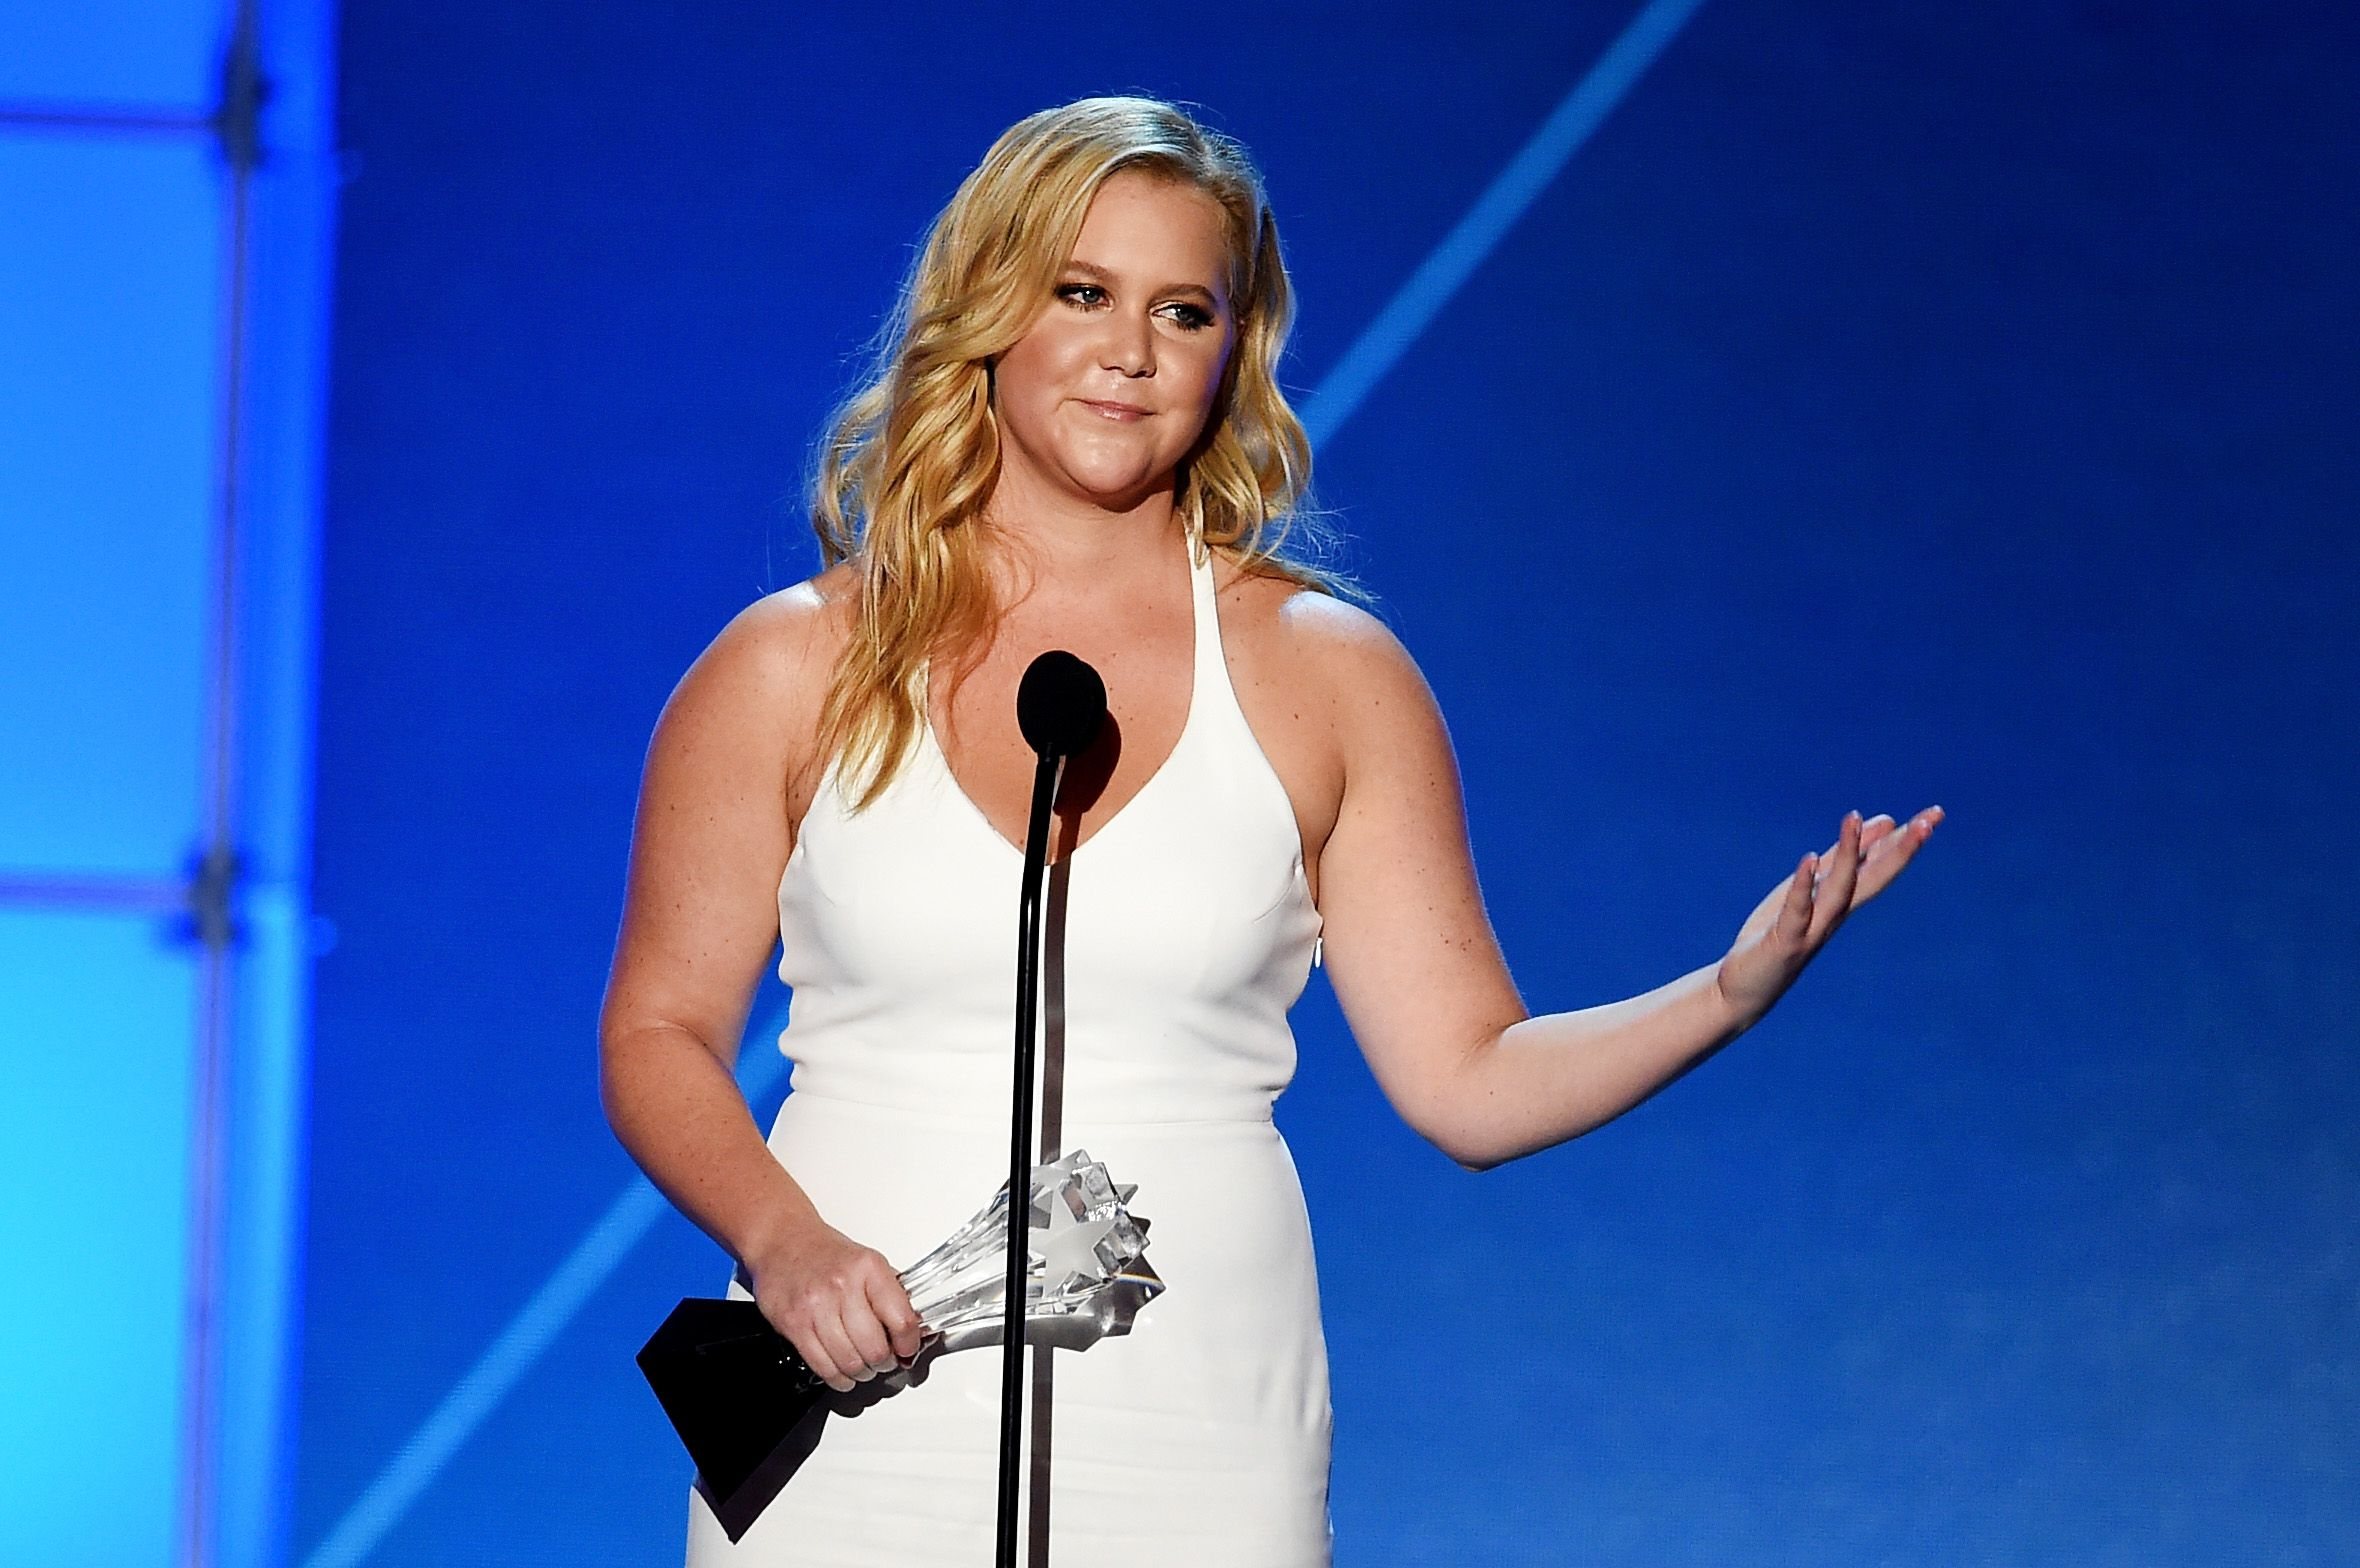 Amy Schumer Fucked amy schumer body shaming - amy schumer is being body shamed